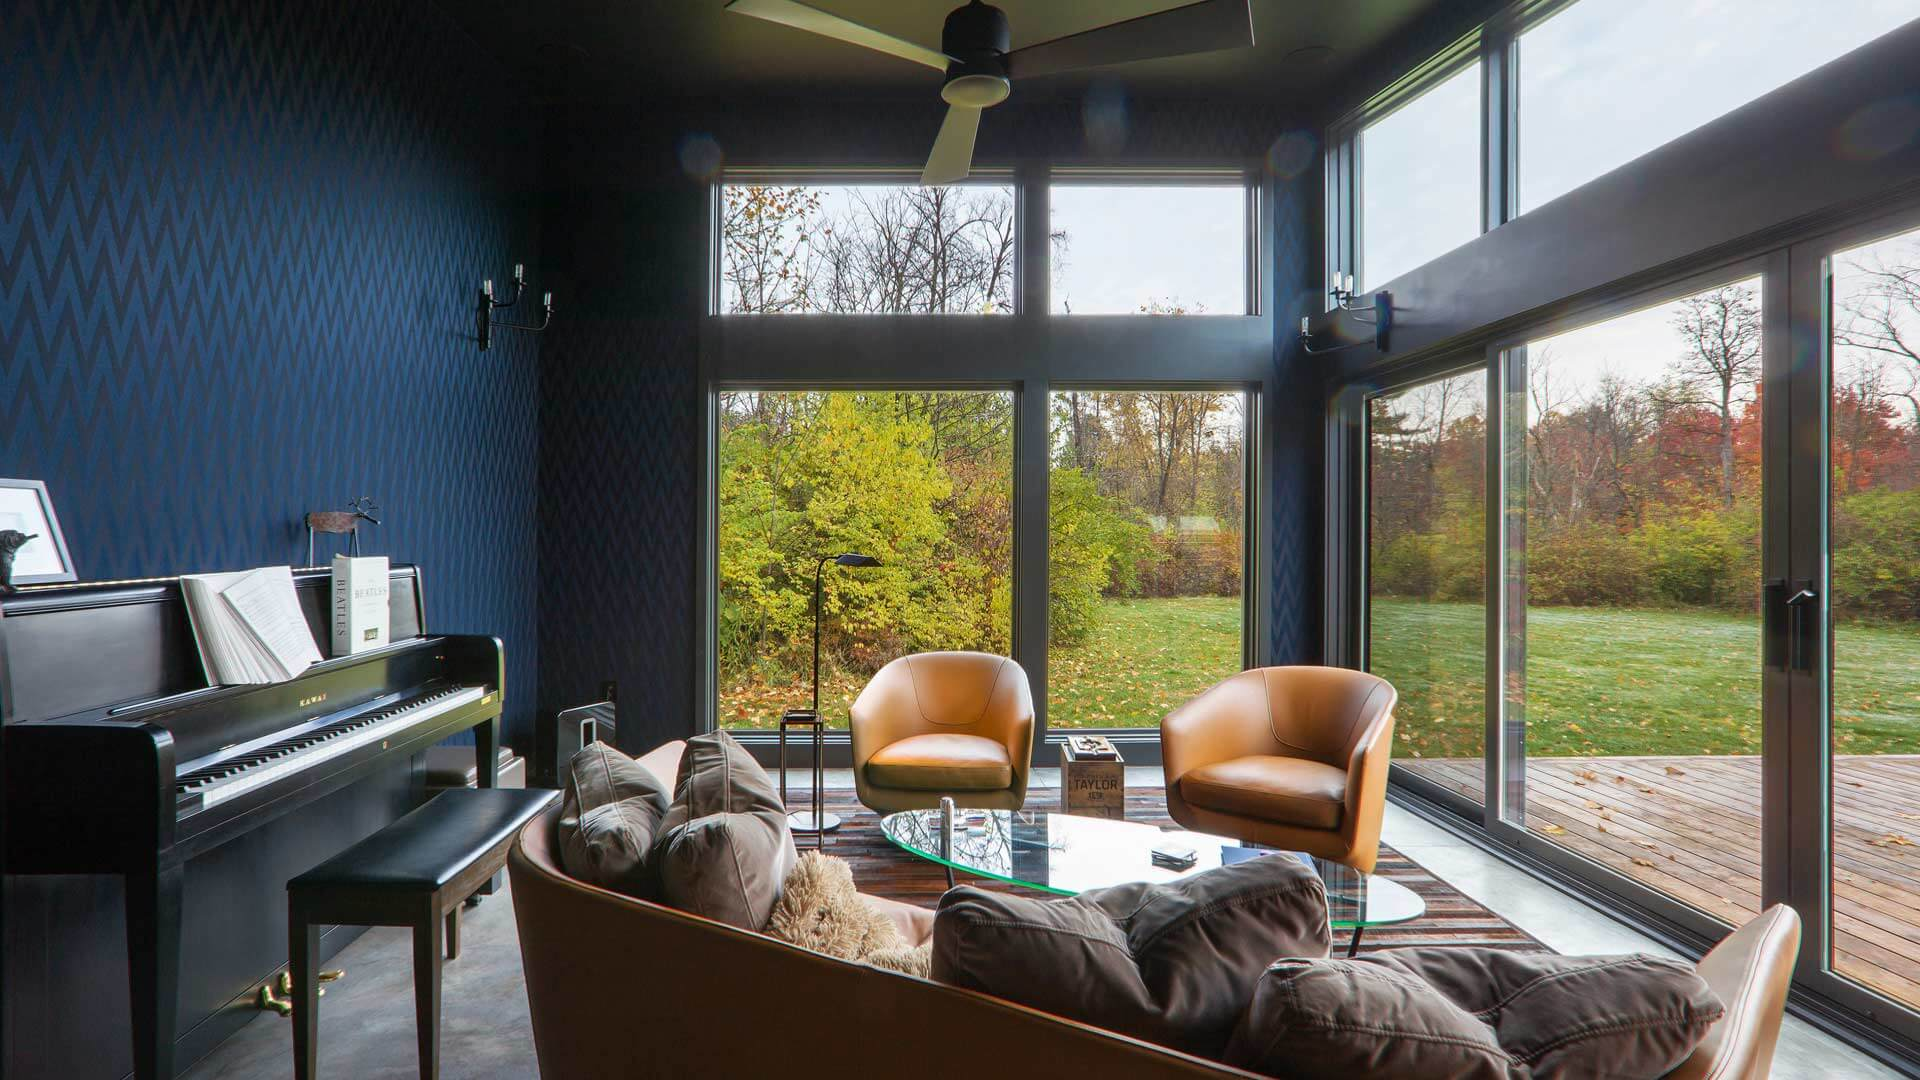 Interior View to Landscape - Cigar Room - Midcentury Modern Addition - Brendonwood, Indianapolis - Christopher Short, Paul Reynolds, Architects, HAUS | Architecture For Modern Lifestyles - WERK | Building Modern - Paul Reynolds, Project Manager